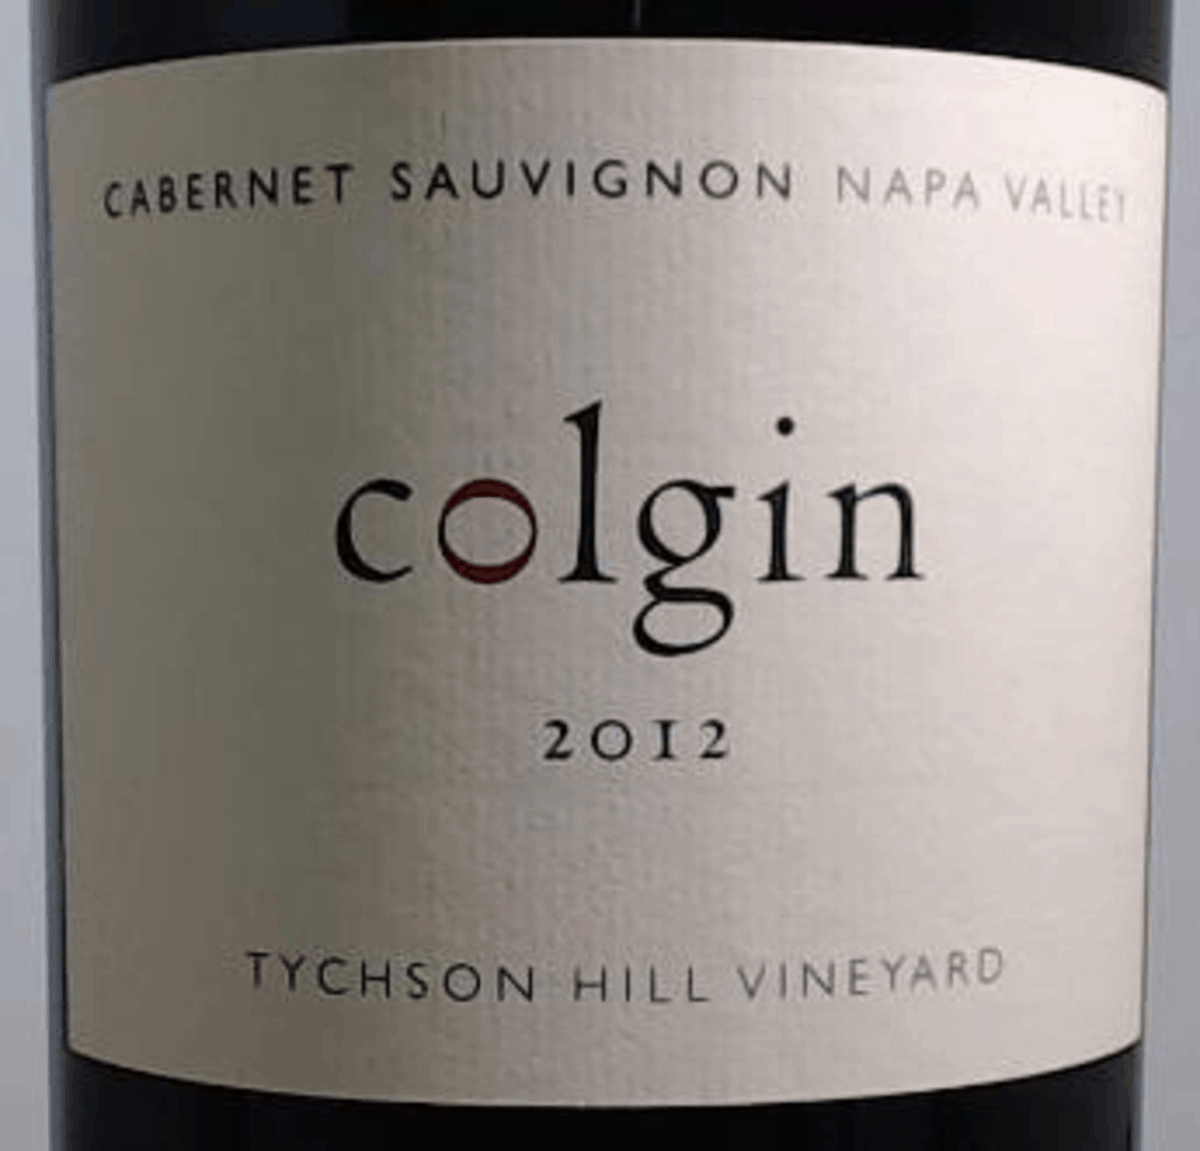 2012 Colgin Tychson Hill Vineyard one of Colgin's 100-point wines.